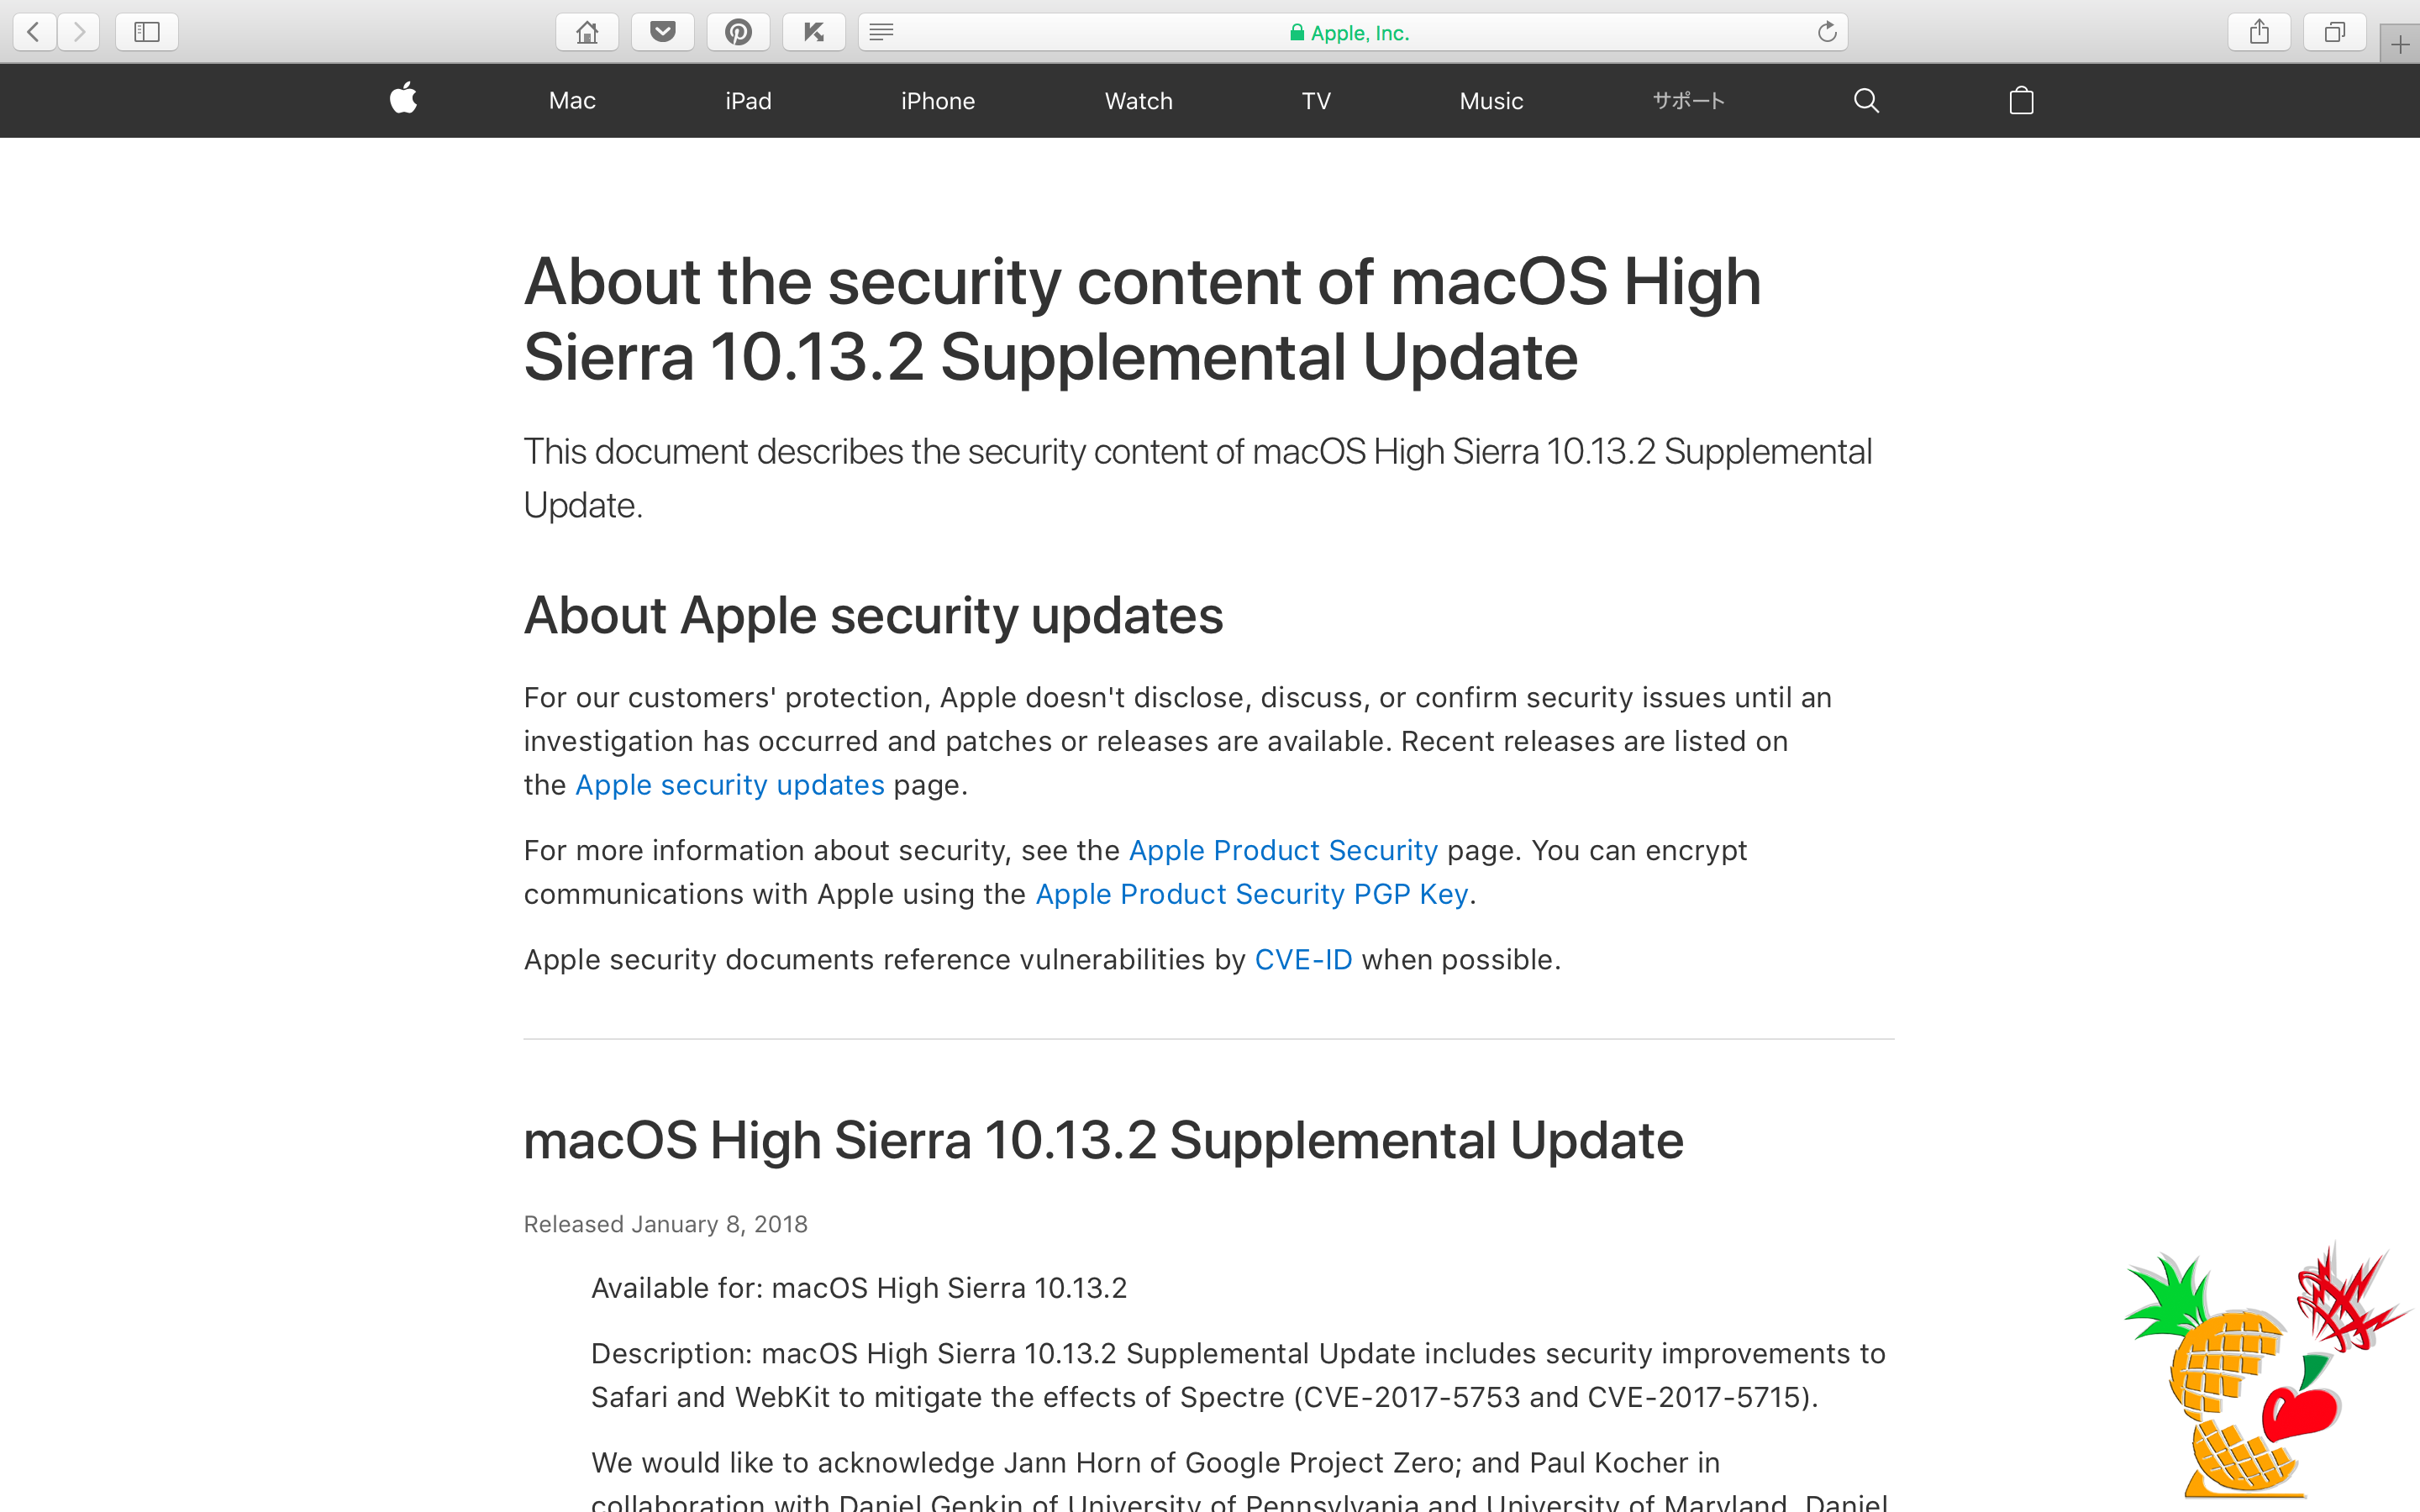 About the security content of macOS High Sierra 10.13.2 Supplemental Update